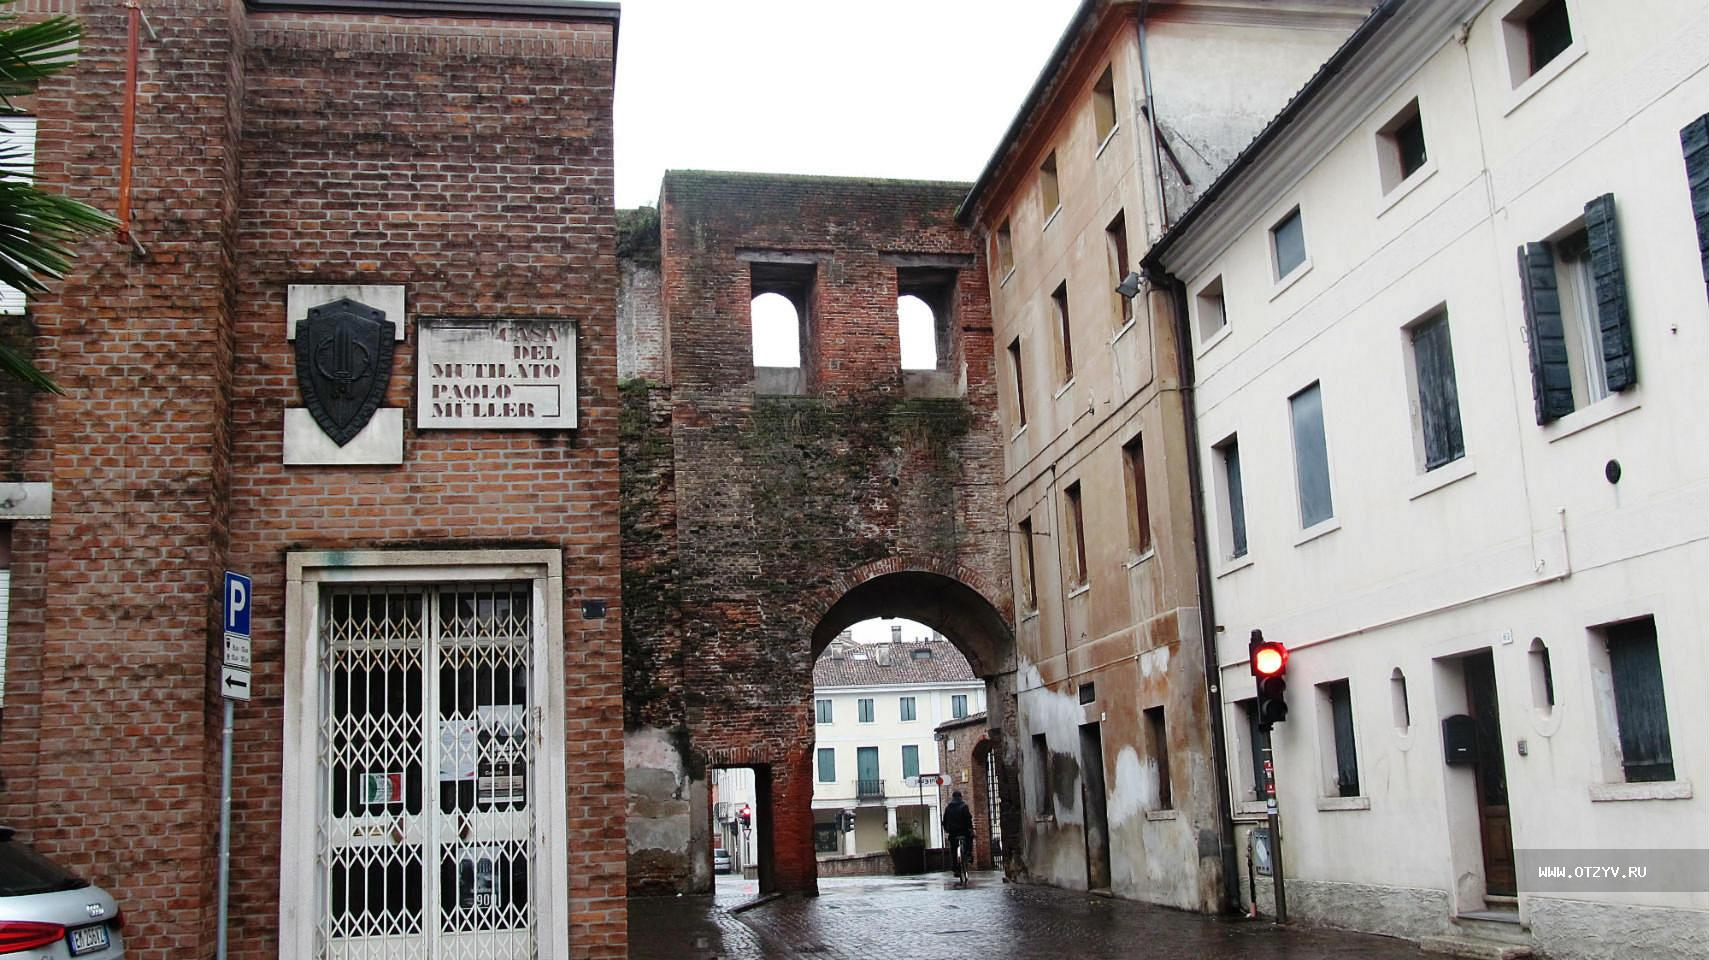 castelfranco veneto divorced singles Book the hotel fior in castelfranco veneto for as little as 12200 eur 4 hotel info stars 30% discount with business rate cancellation is free of charge recommended by 100% of all hotel guests.